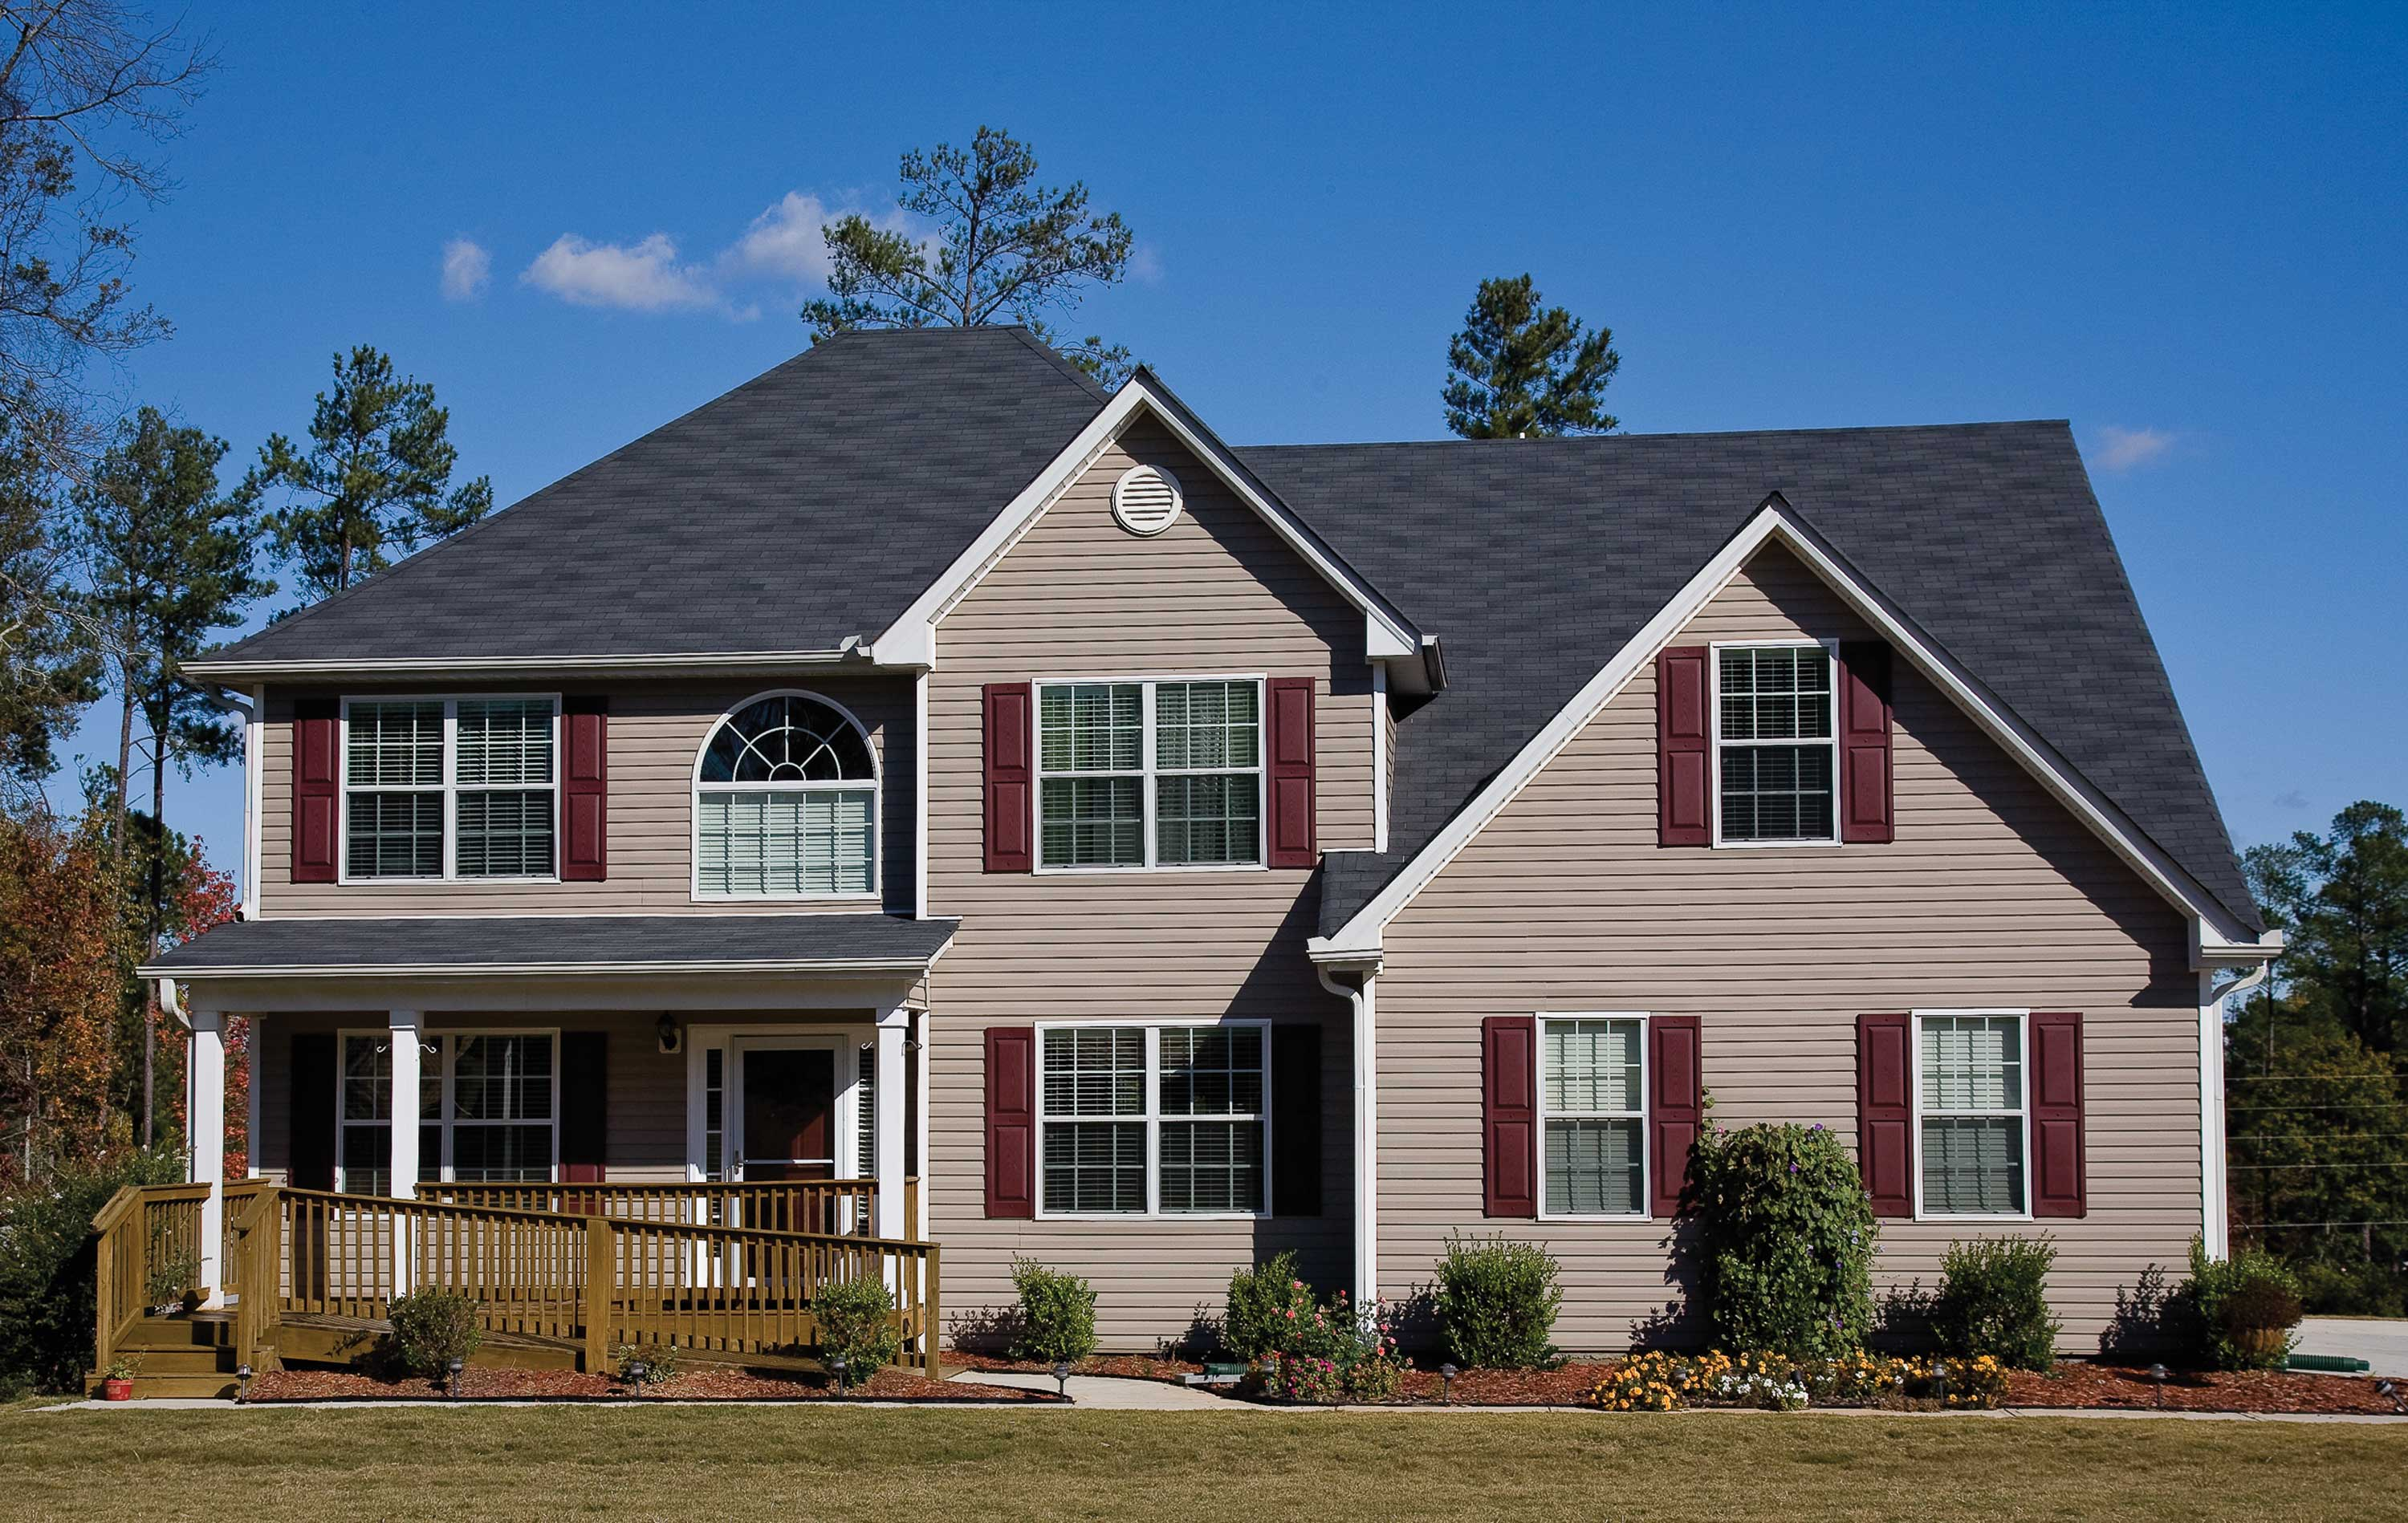 Exterior Siding Ideas | Mid-America on House Siding Ideas  id=45090